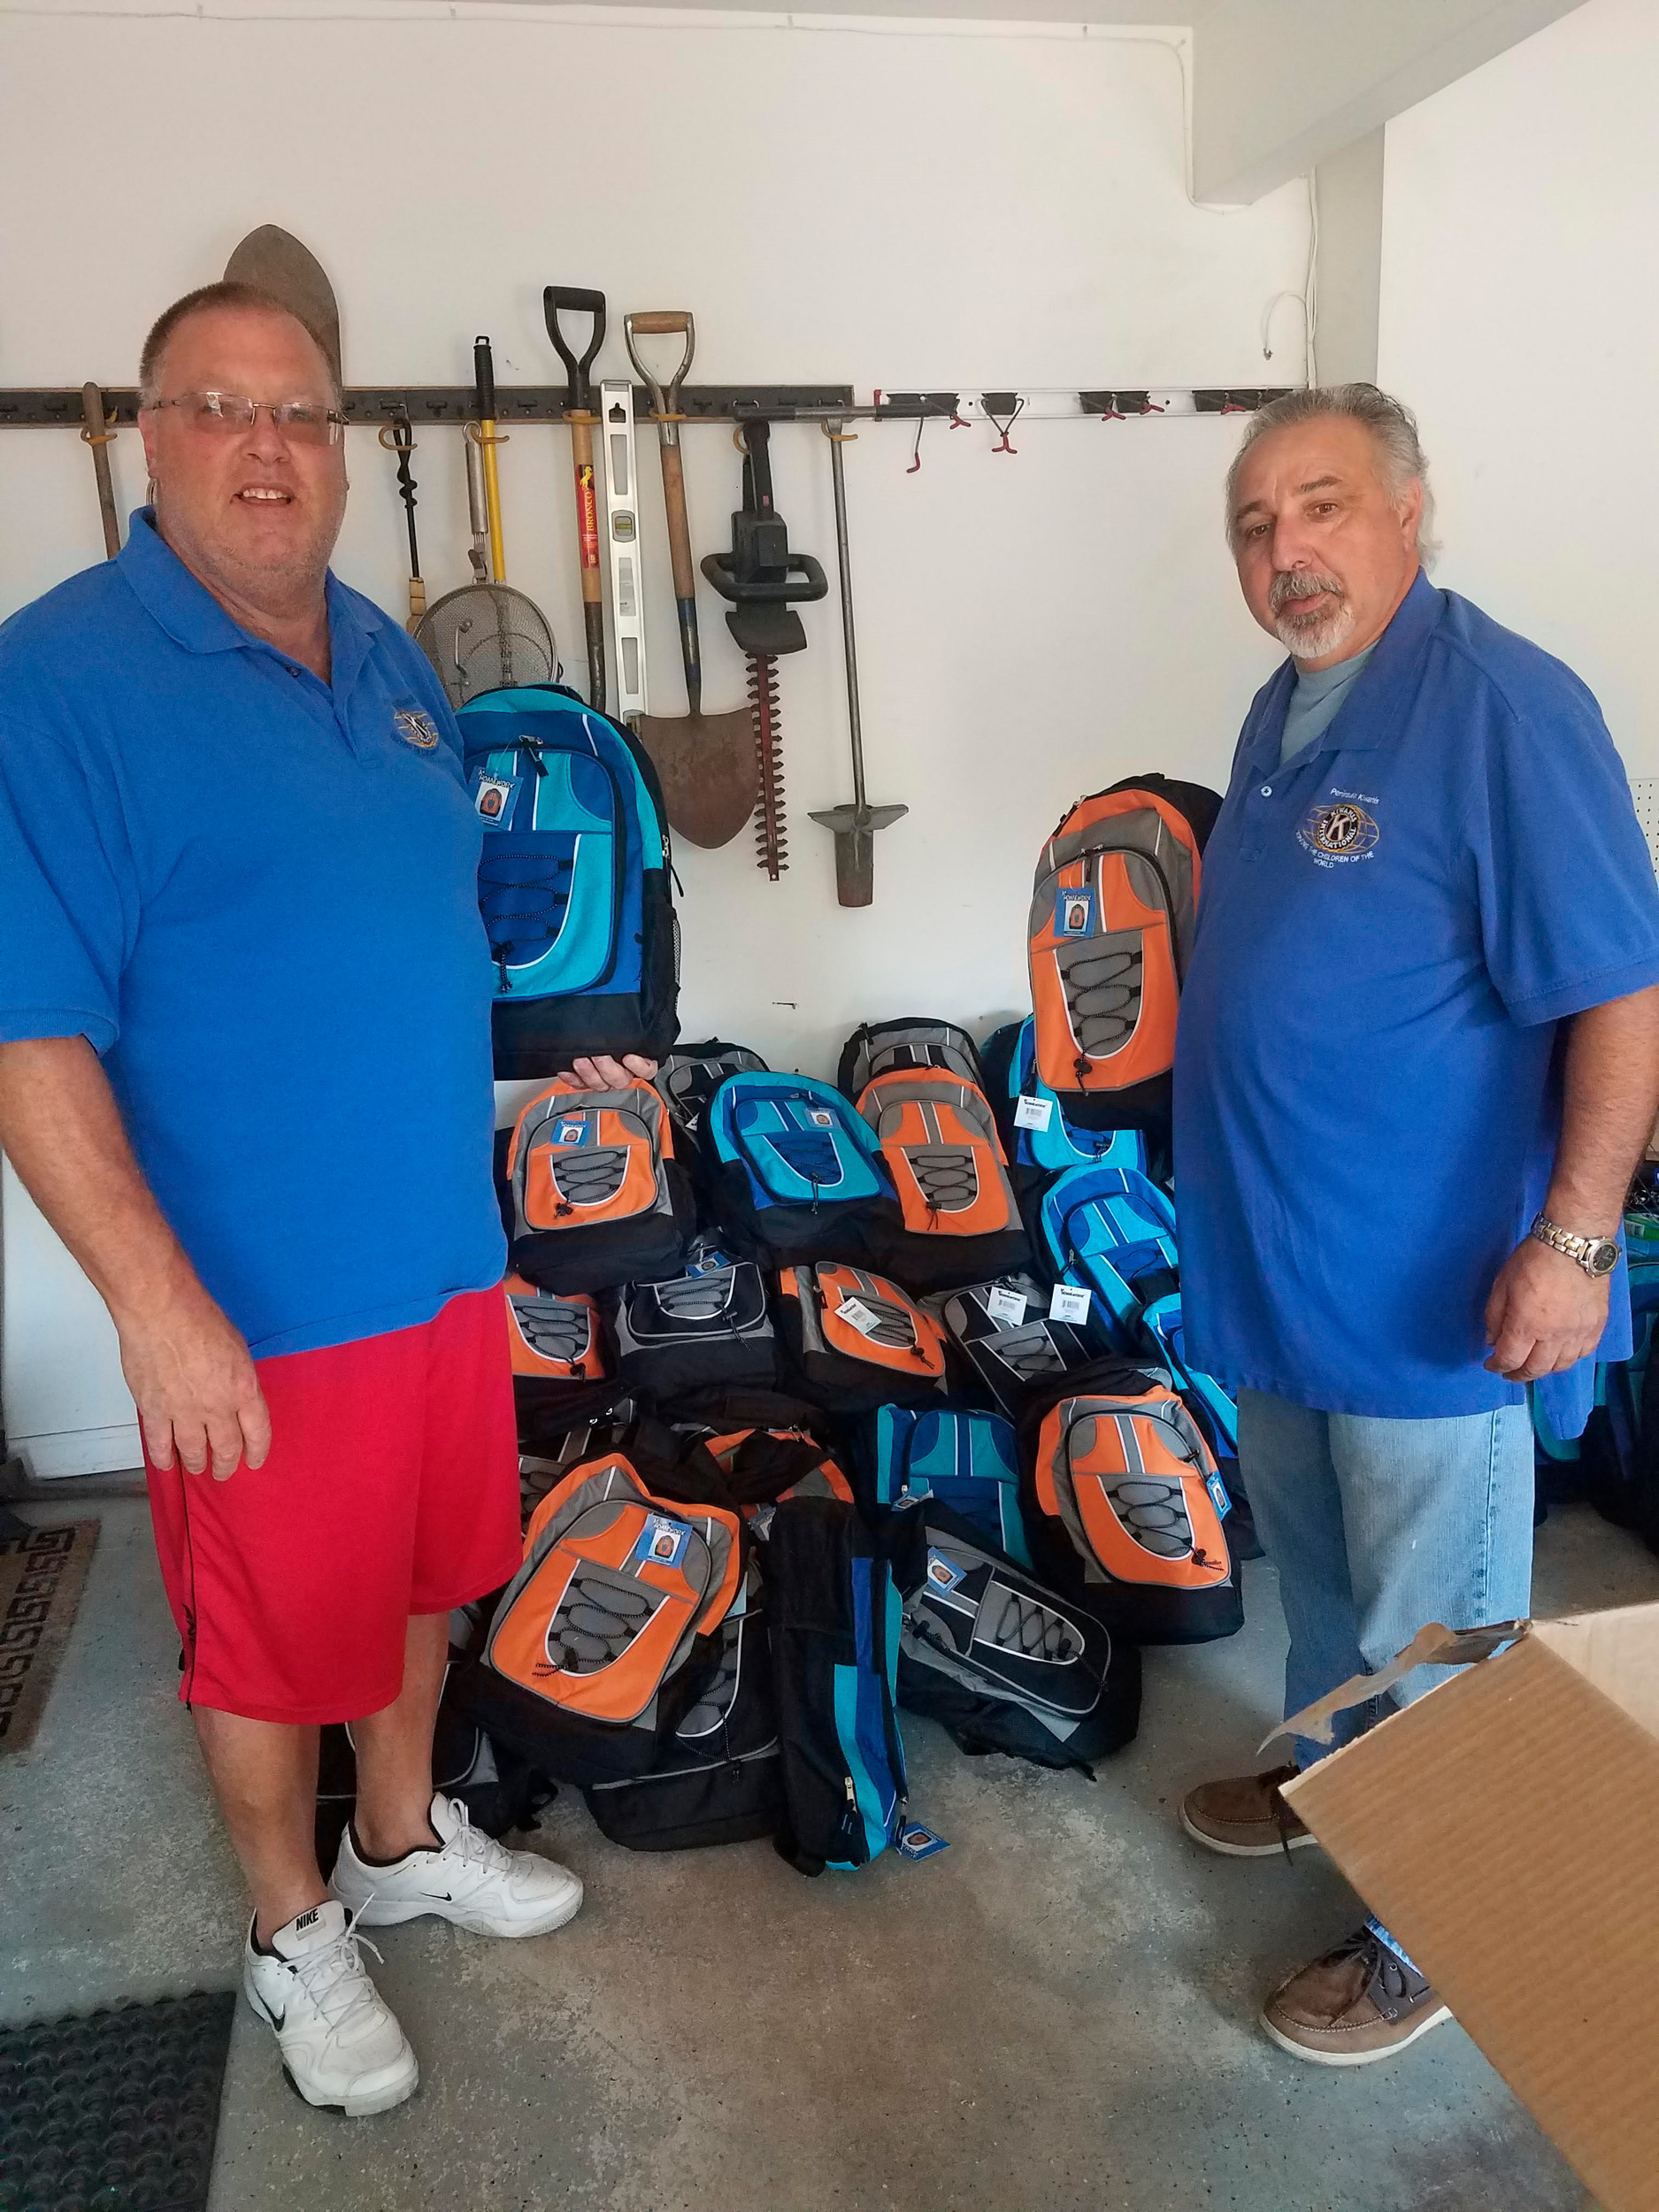 Backpacks filled with school supplies, toothbrushes and toothpaste were donated to three local school districts by Peninsula Kiwanis. Above, Program Chairman Bill Dubin, left, and Peninsula Kiwanis President Dominick Curra.